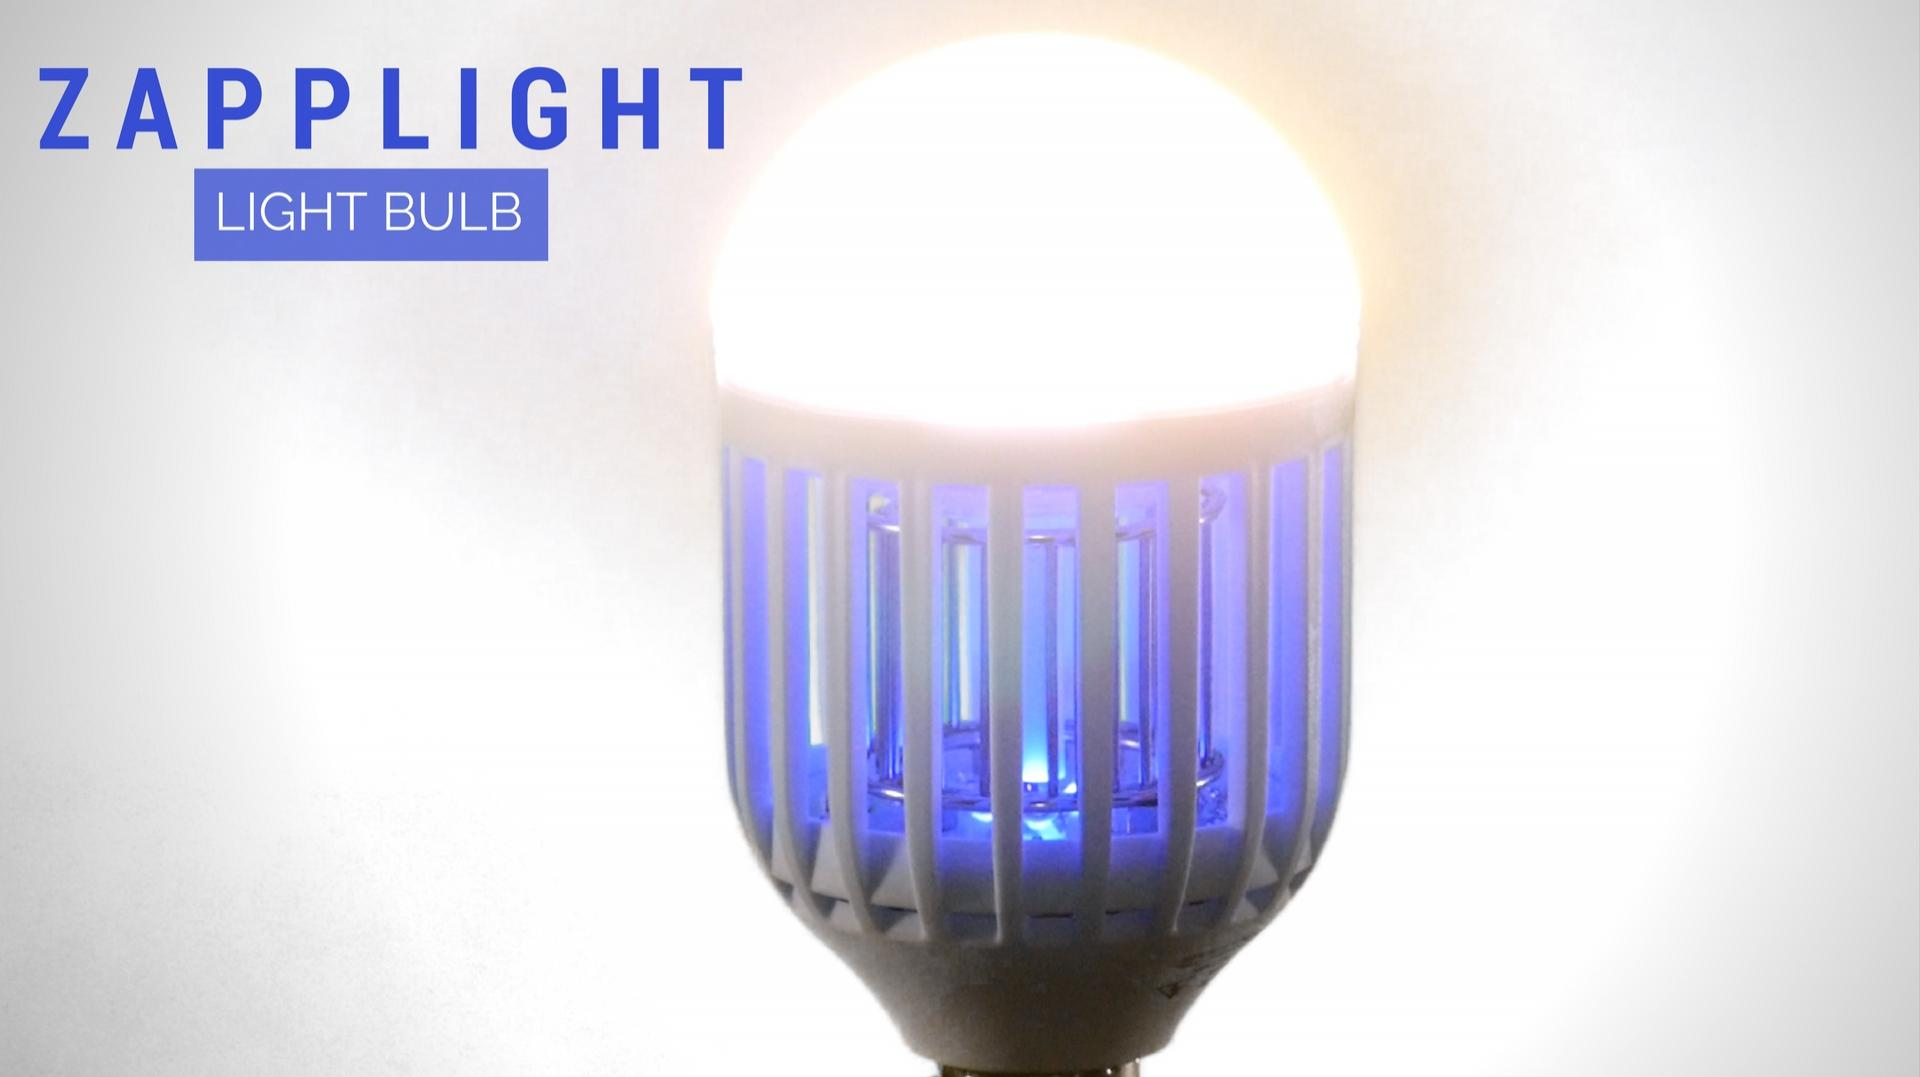 ZappLight Light Bulb